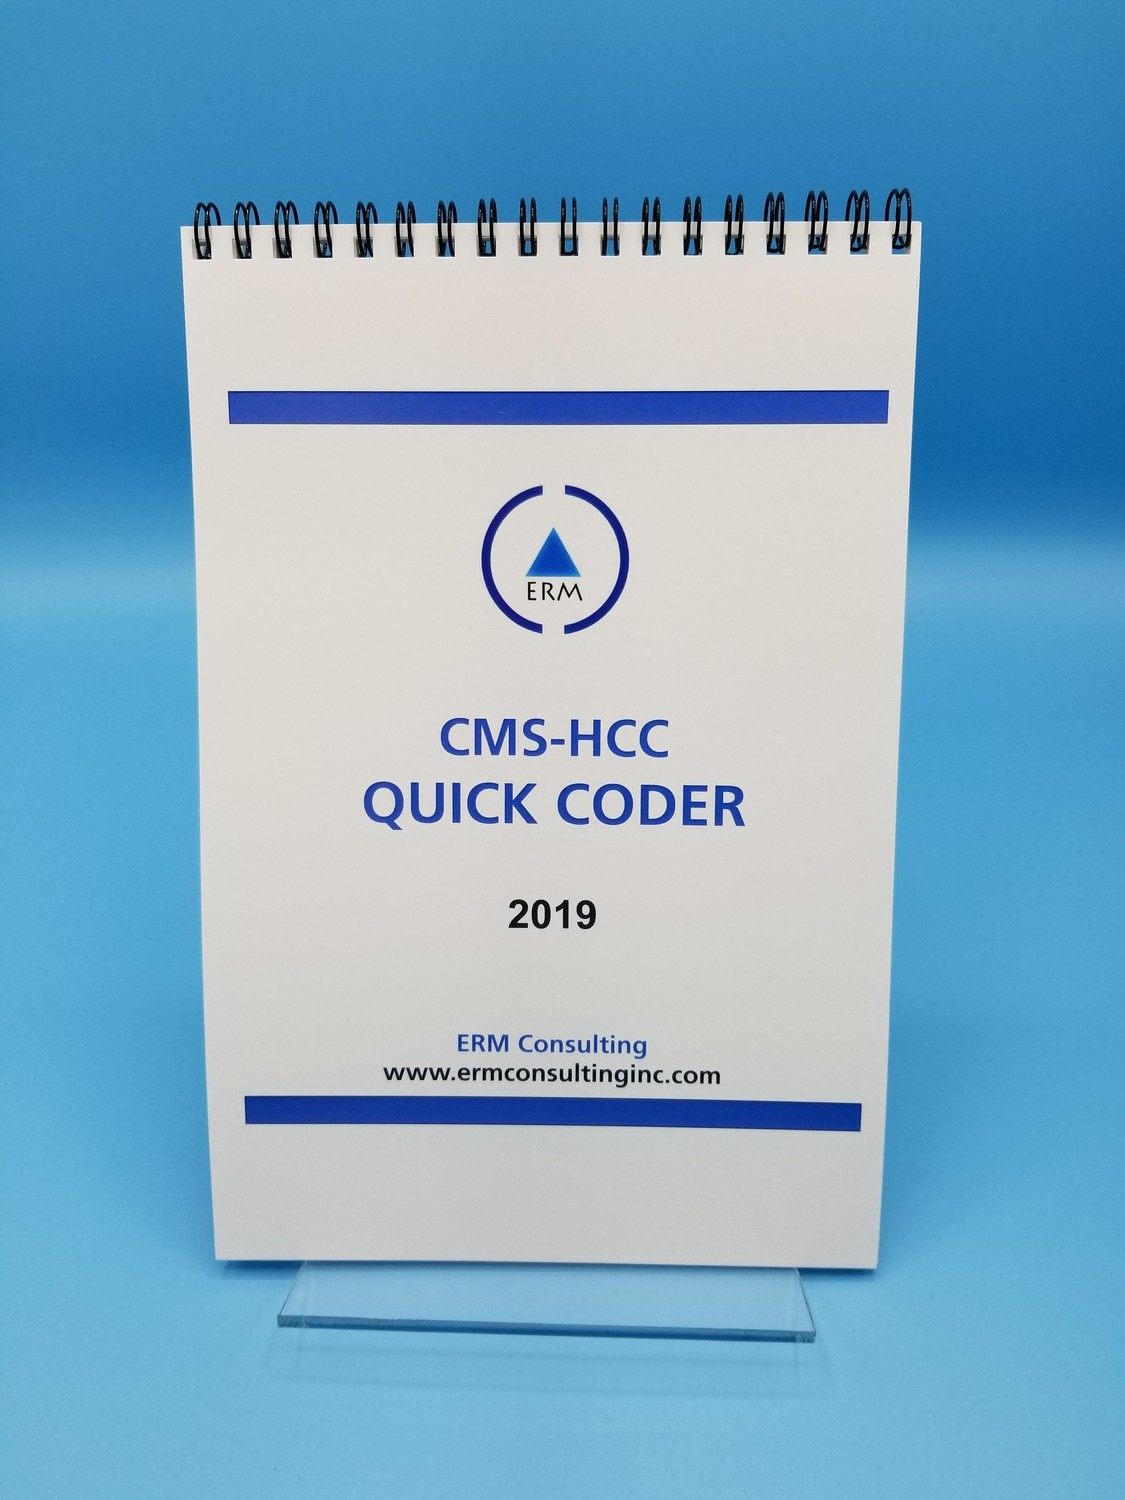 2019 CMS-HCC Quick Coder